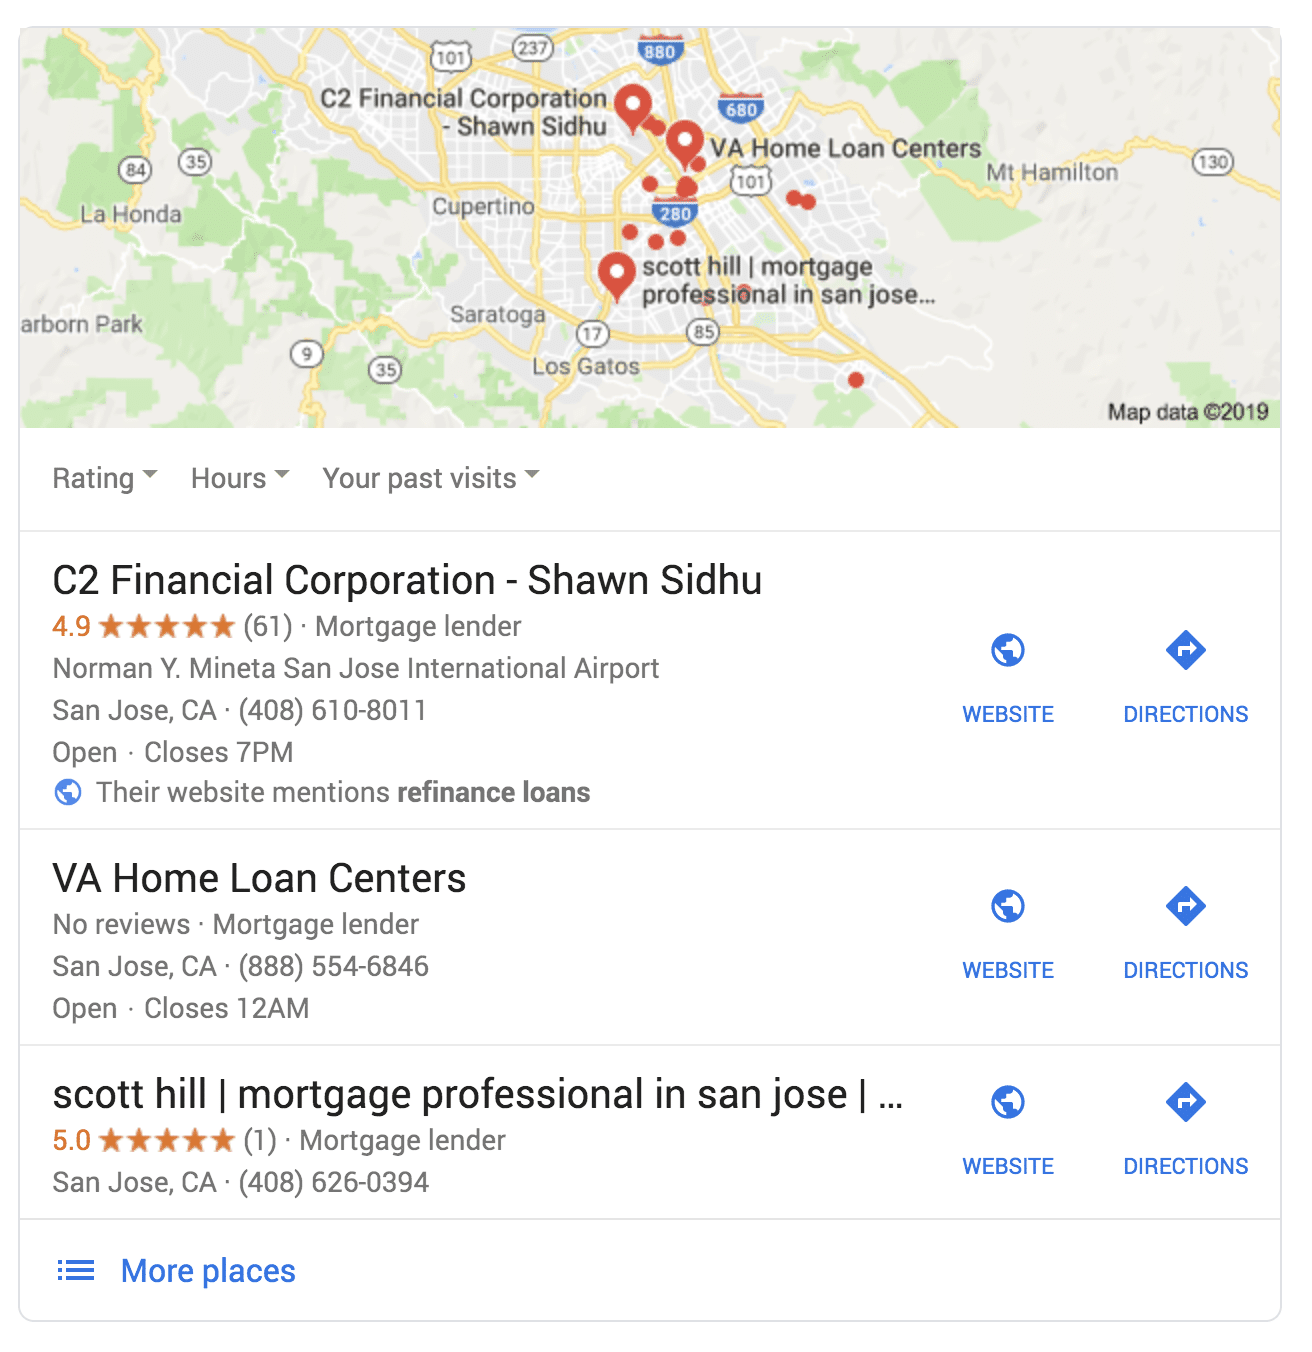 Business listing in Google Maps